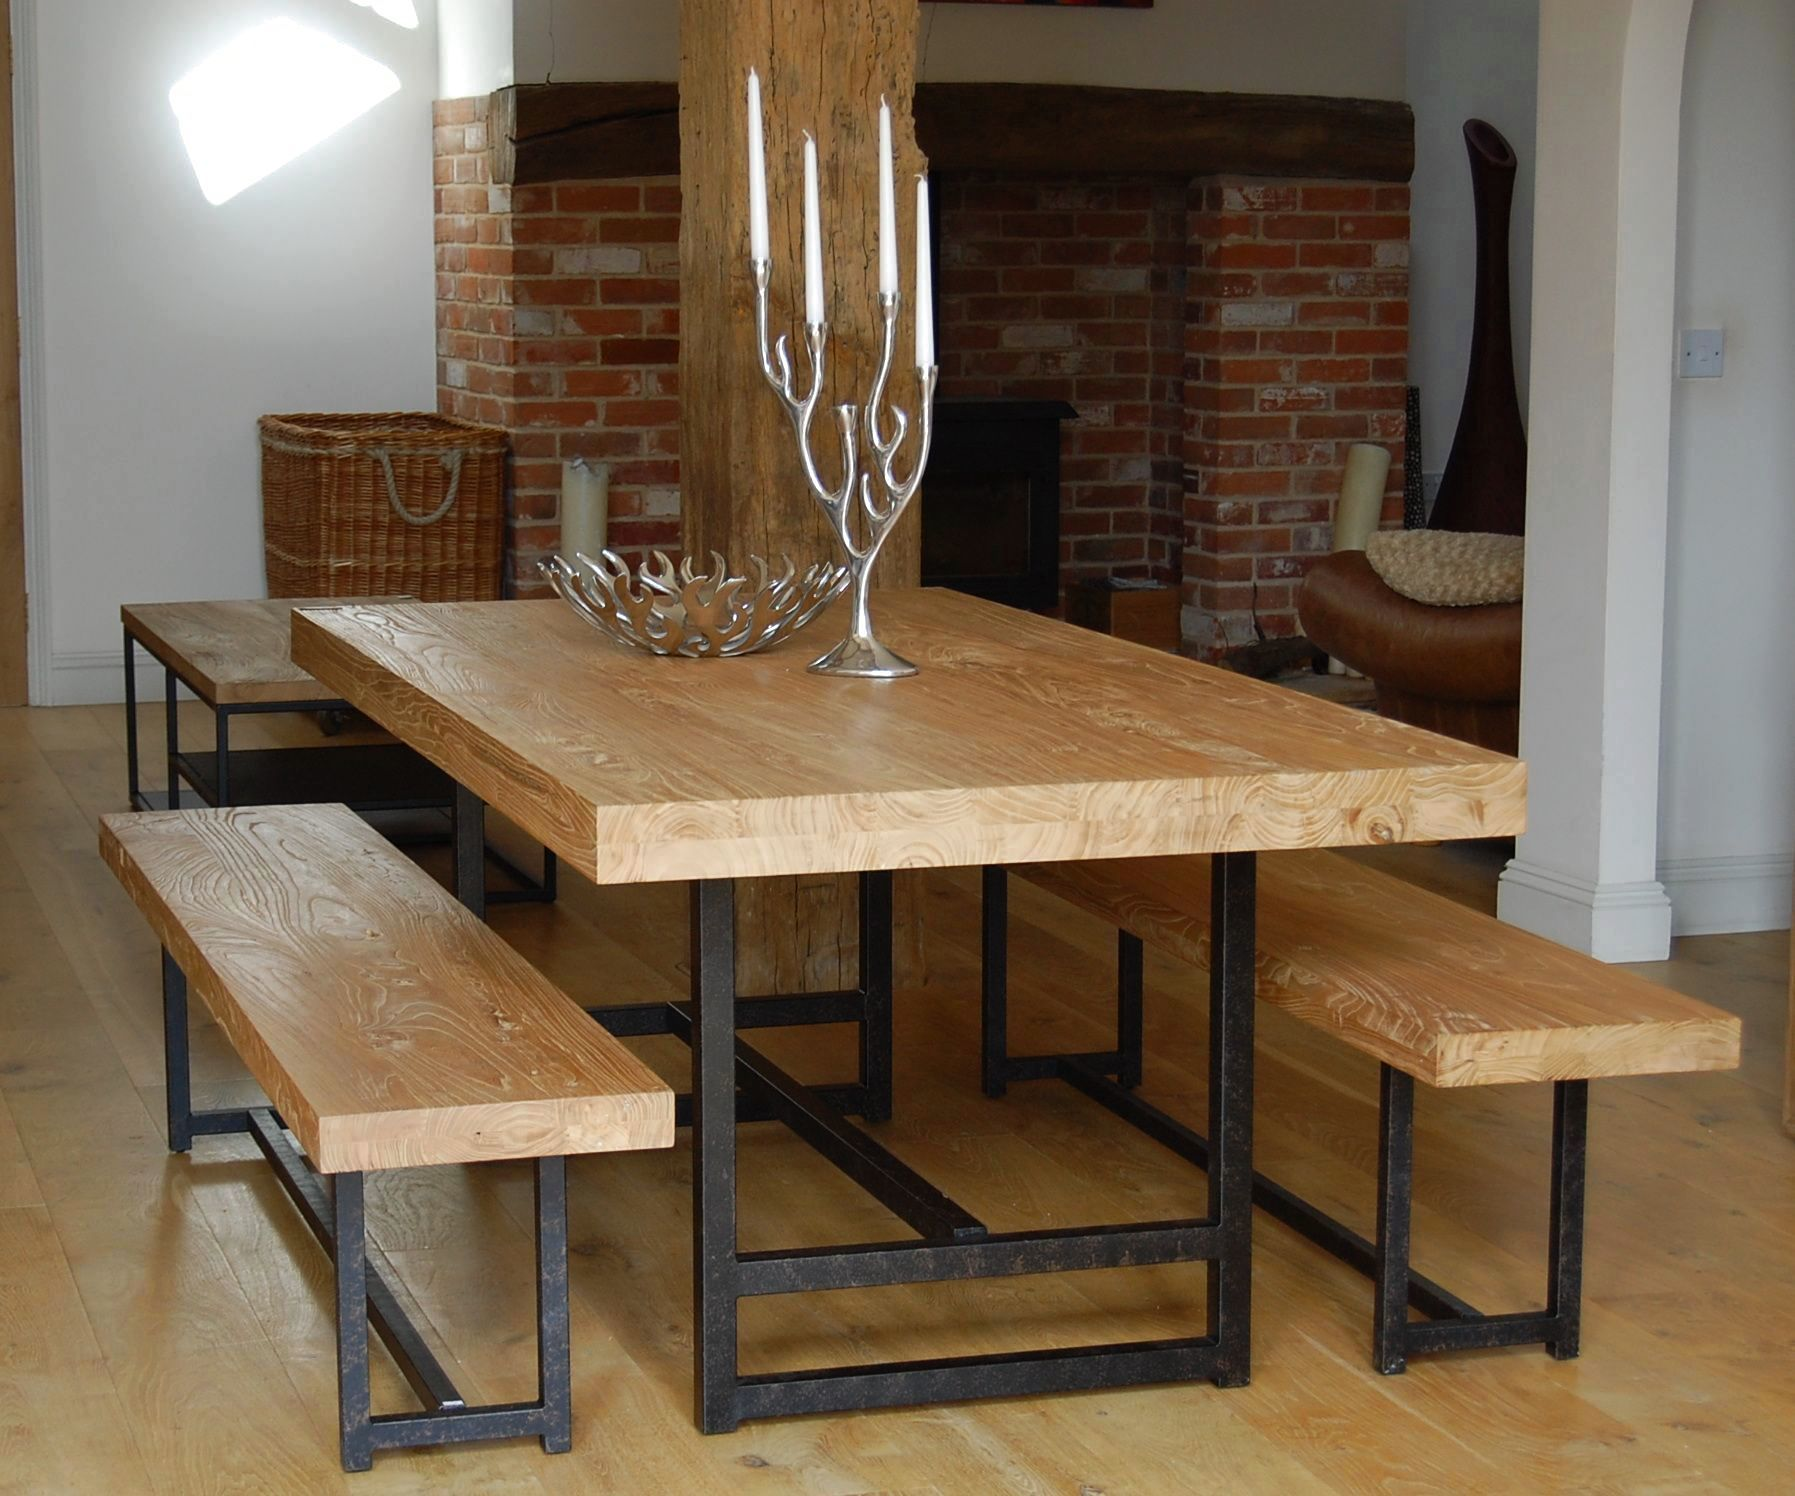 Glass kitchen table sets and wooden floor with wooden furniture